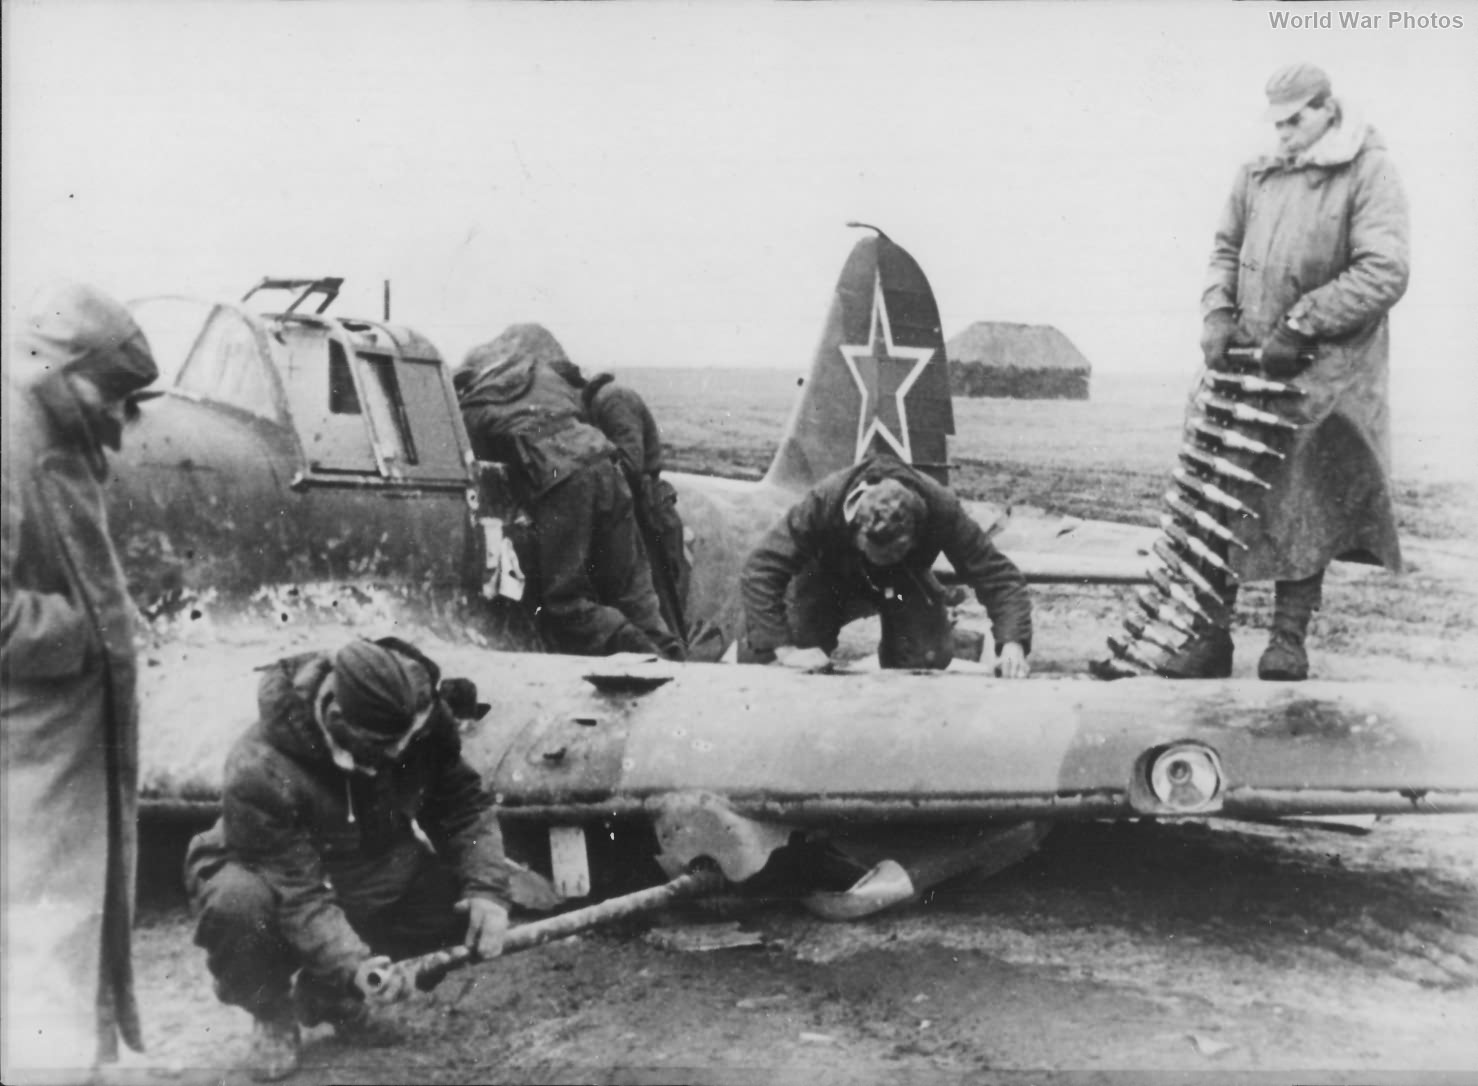 Wreckage of downed Il-2 1944